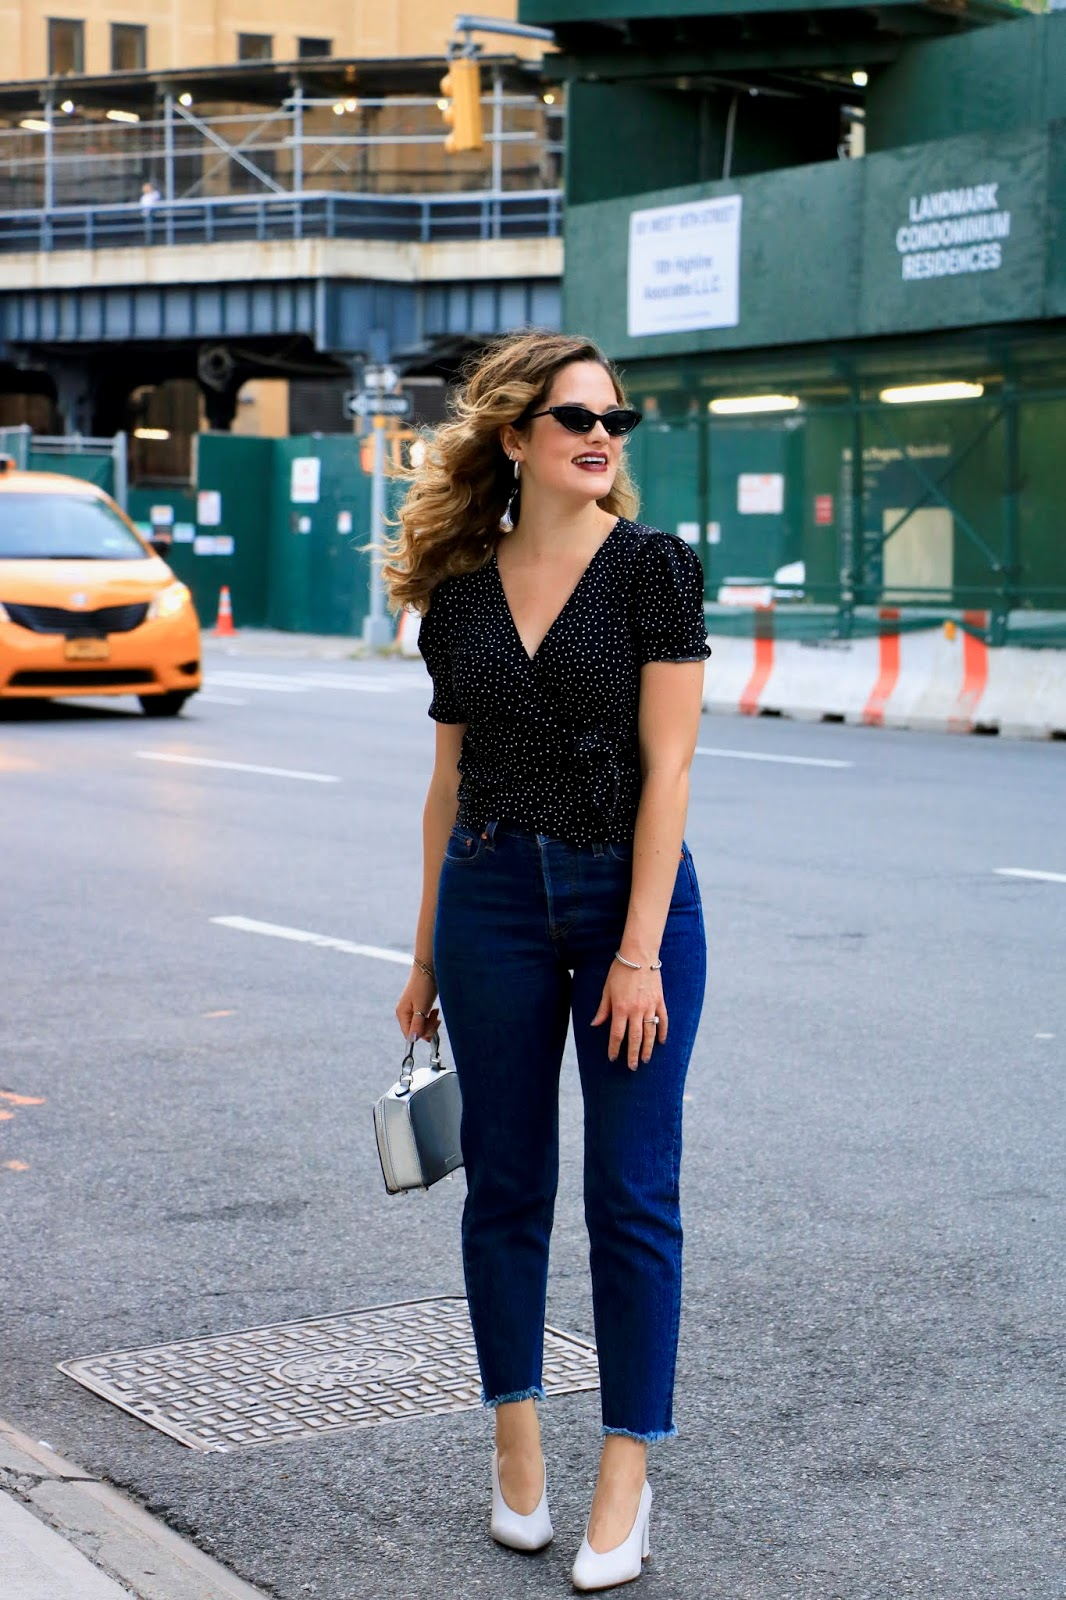 Nyc fashion blogger Kathleen Harper at New York Fashion Week 2019.